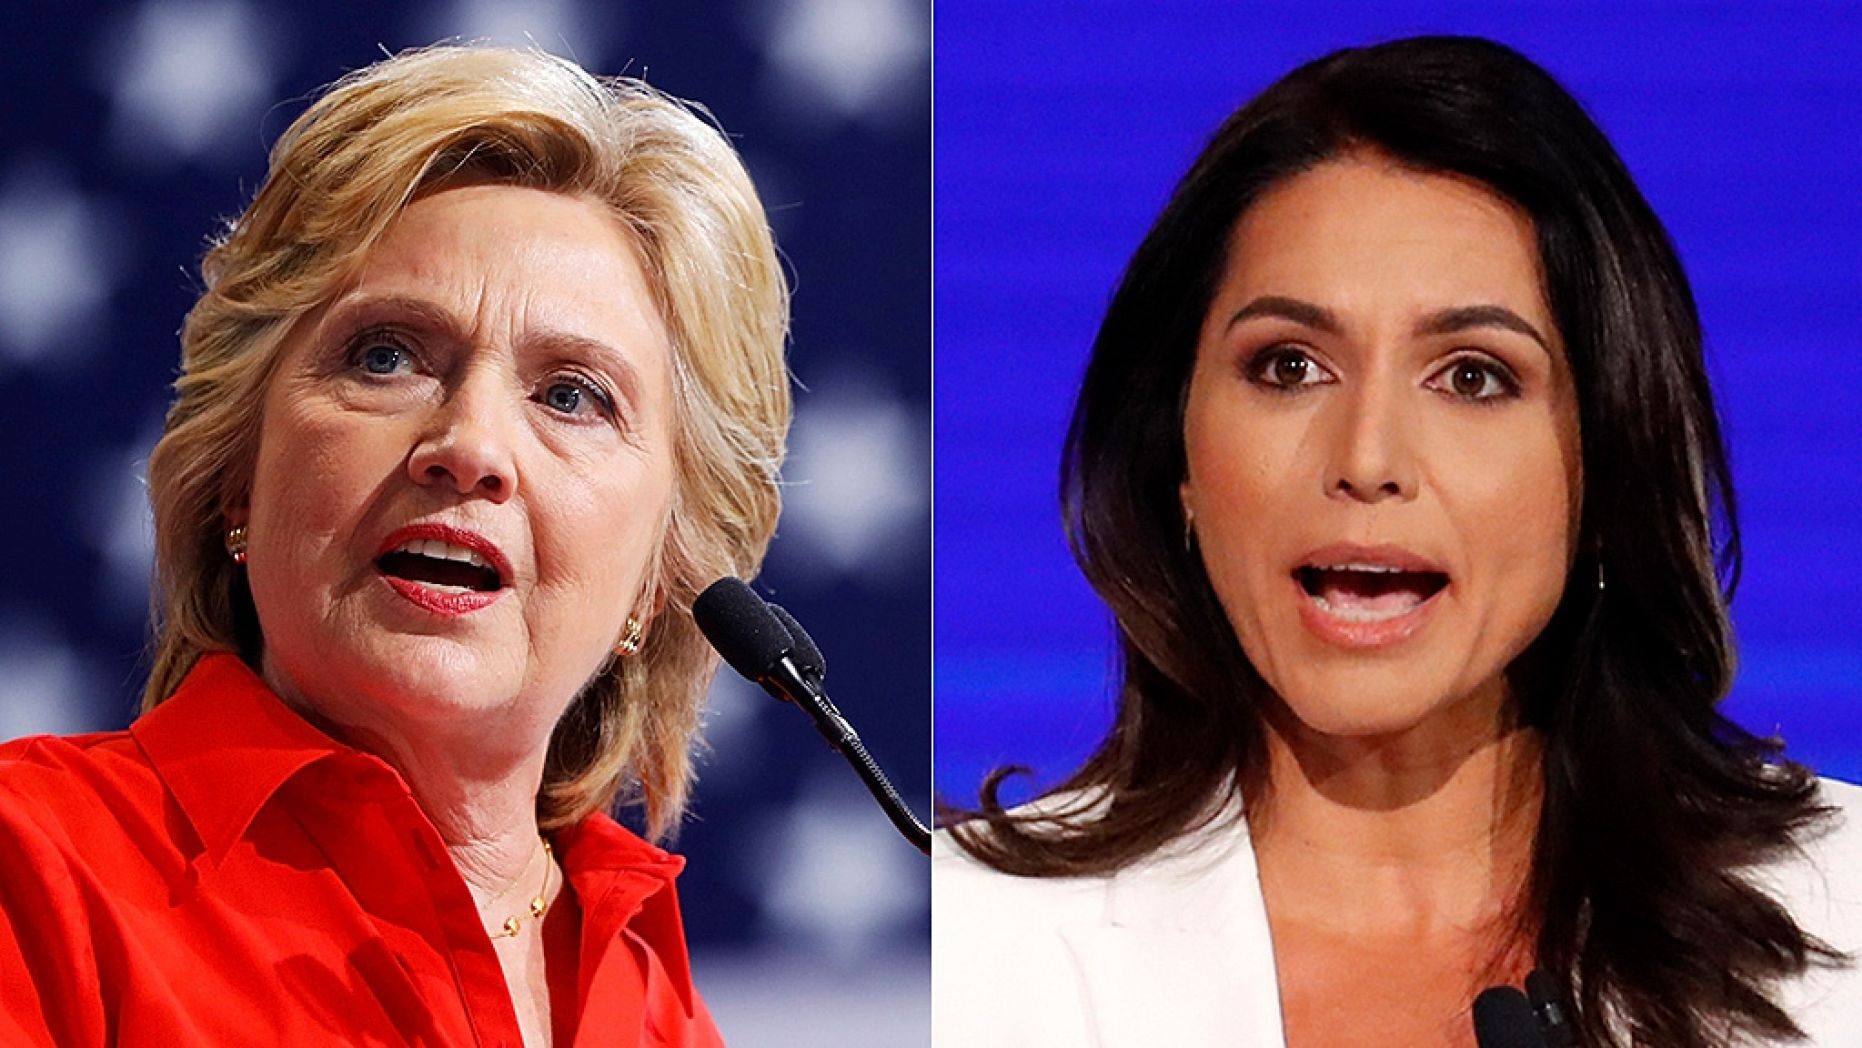 Tulsi Gabbard Claps Back at Hillary Clinton for Suggesting Russia Is Grooming Her For Third-Party Run